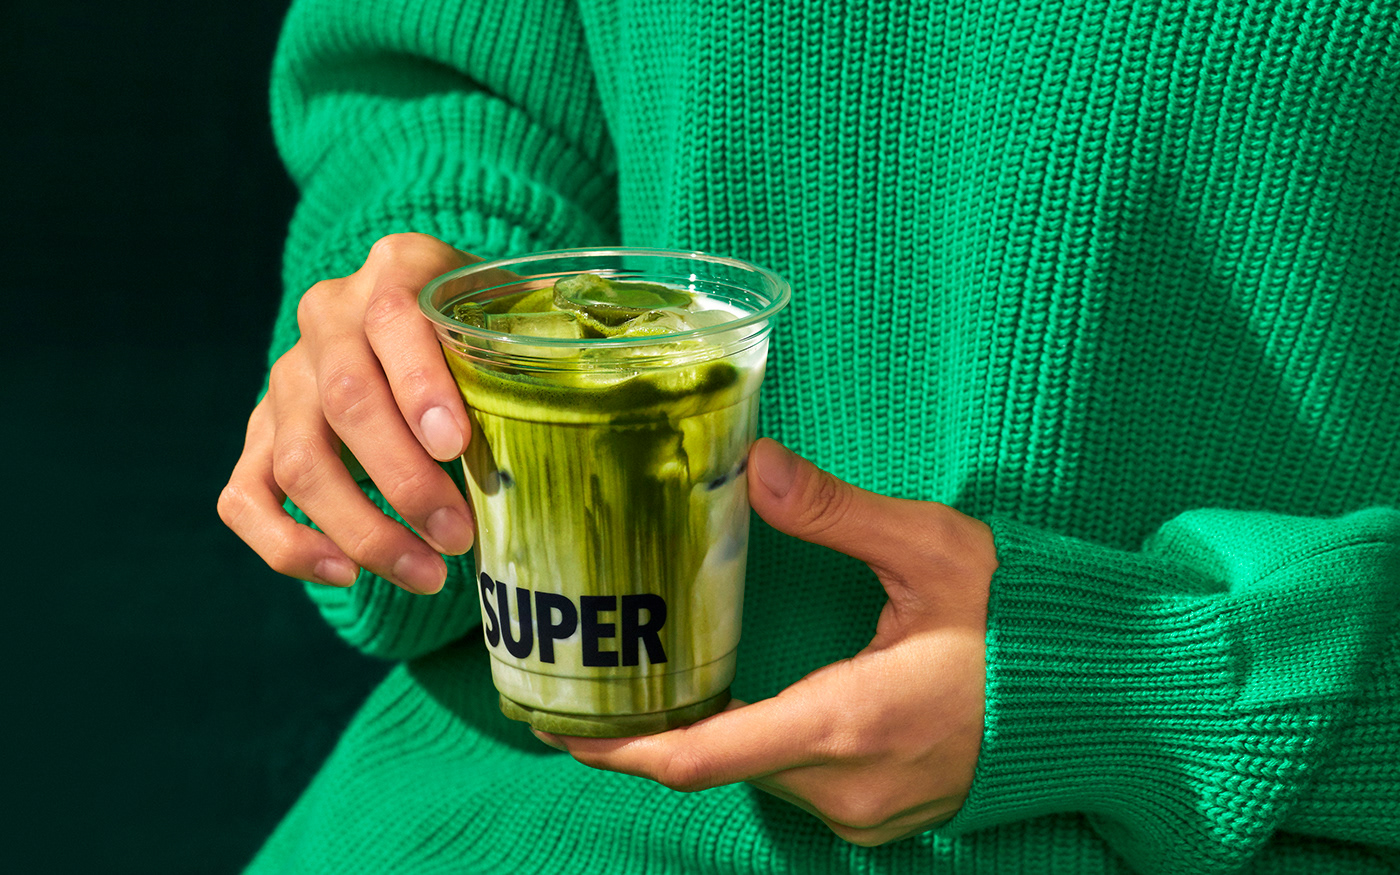 Thumbnail for Super Matcha's Branding Will Have You Craving The Tasty Green Drink In No Time